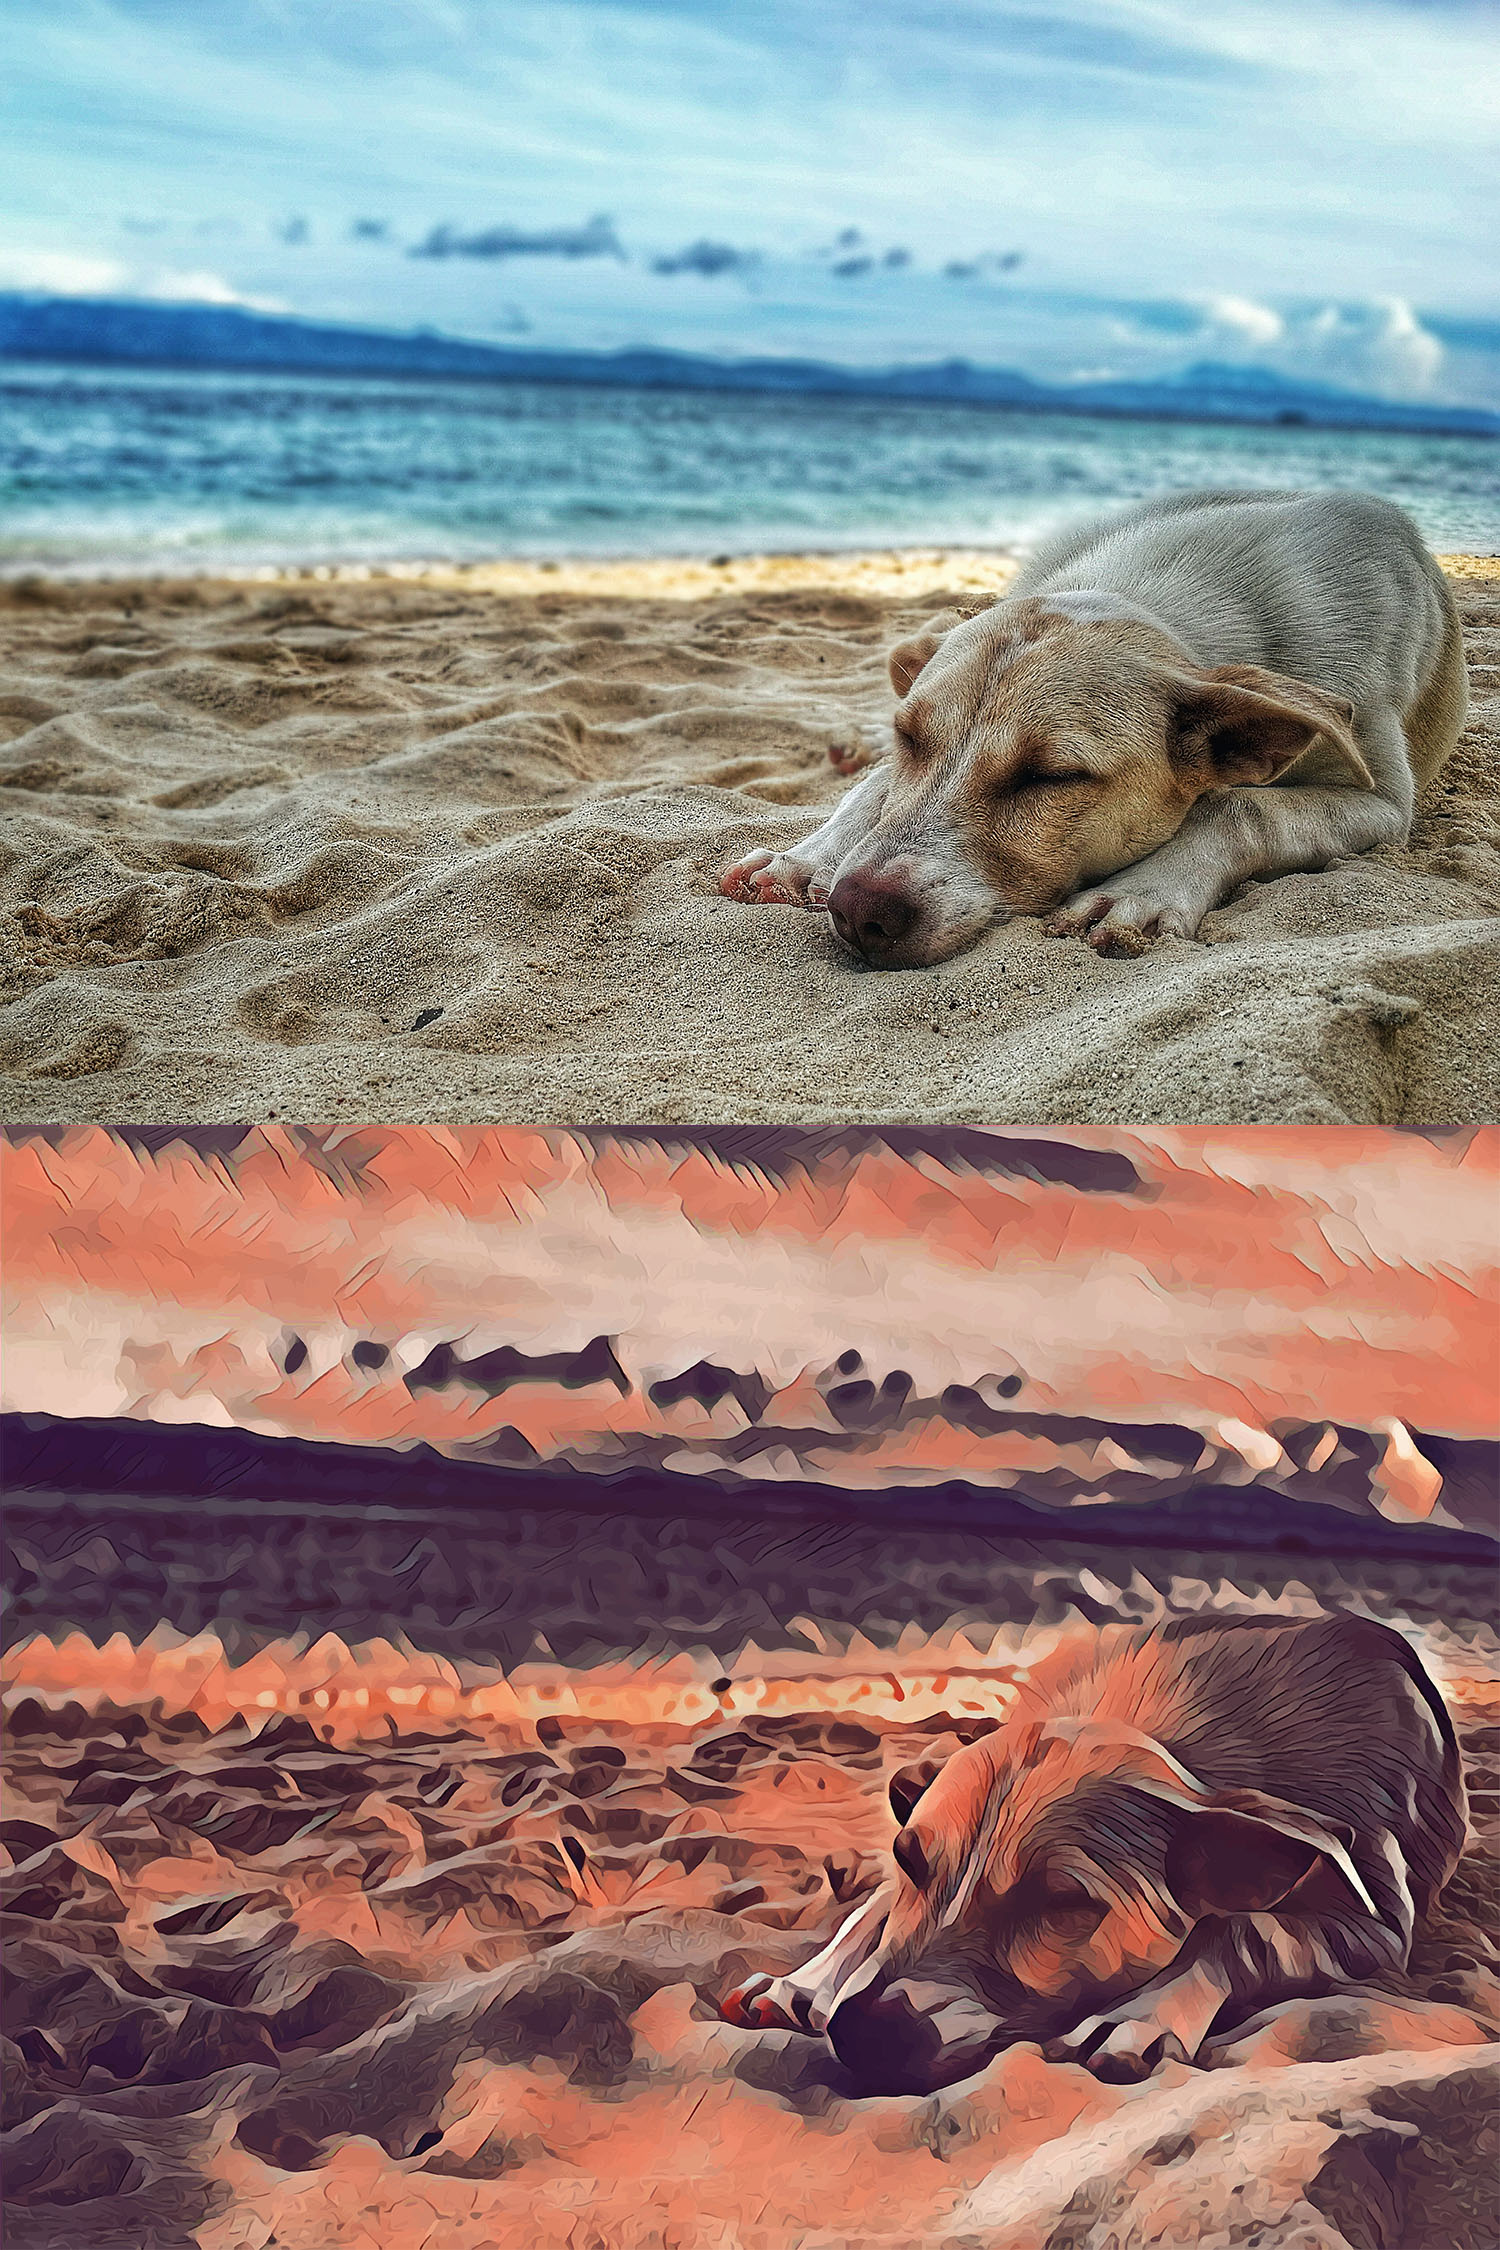 Before and after stylized image of a dog sleeping on the beach